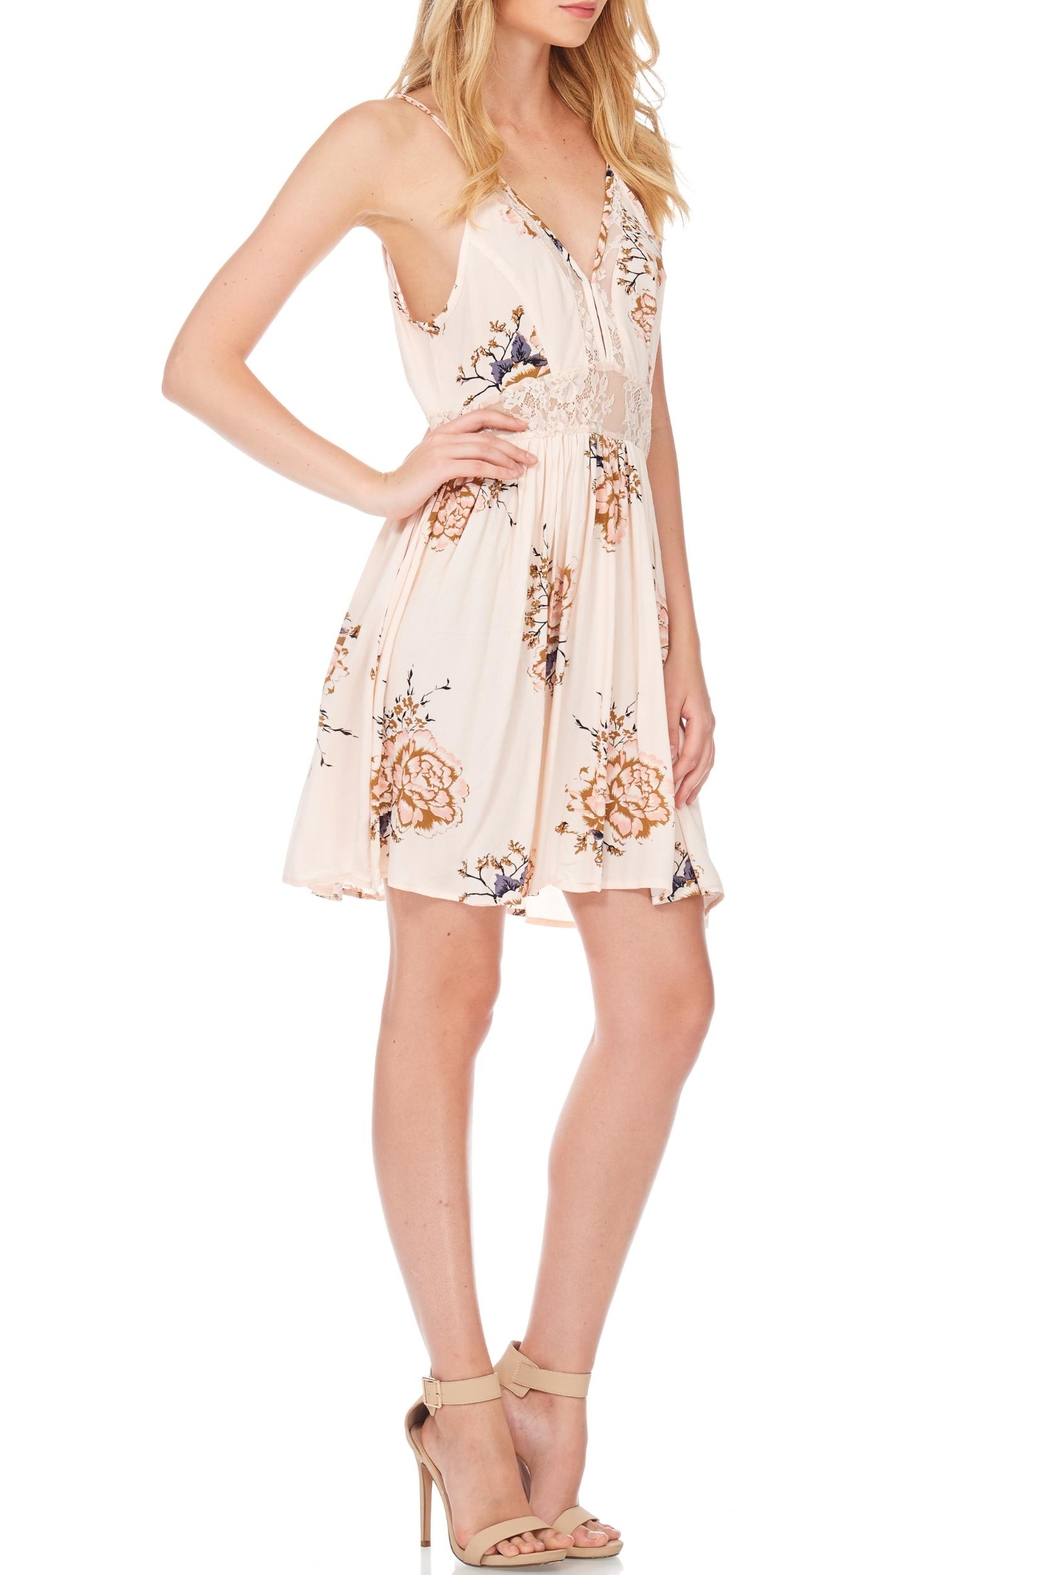 Anama Lace-Insert Floral Mini-Dress - Front Full Image